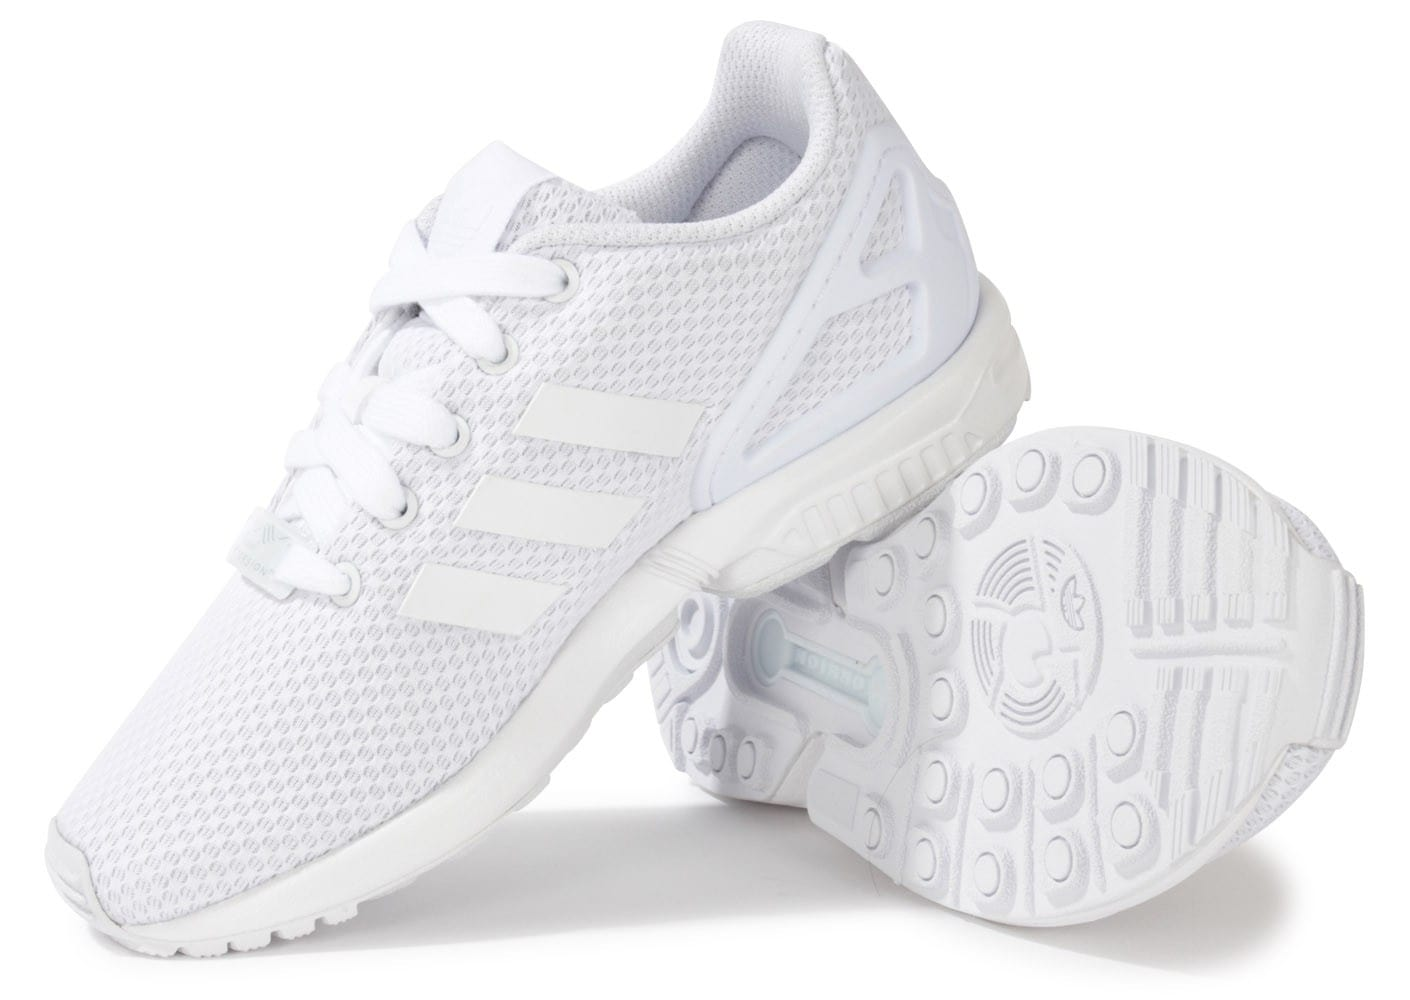 adidas zx flux pas cher blanche